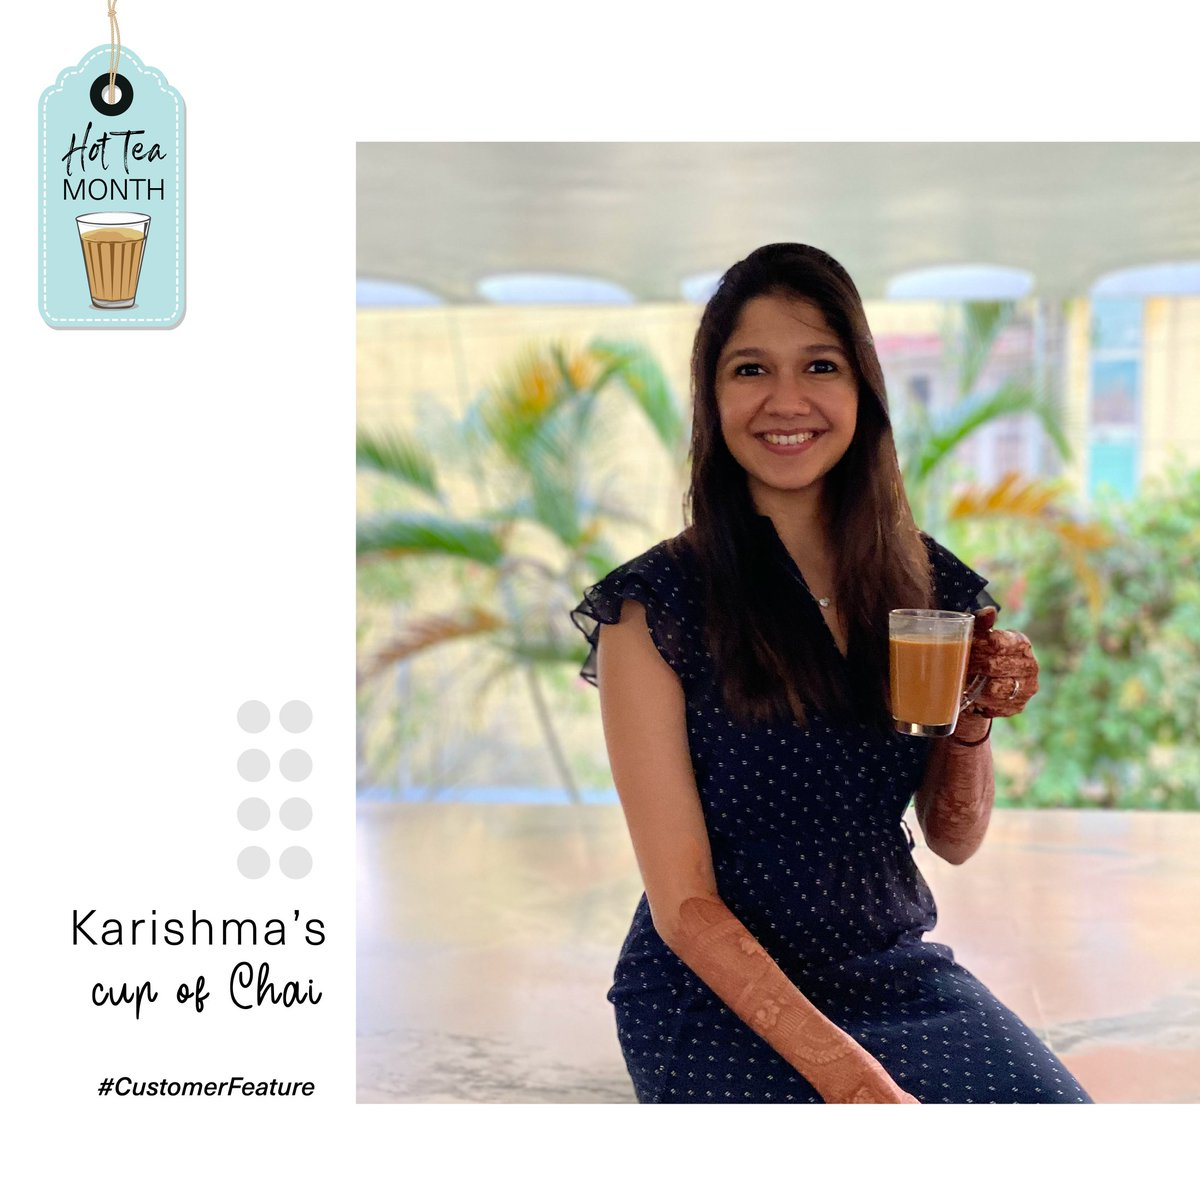 My Chai, my way! ☕😀  Karishma spills the beans on her cup of Chai! How do you like yours? 😀  #Conversation #candid #conversations #thursdayvibes #ThursdayThoughts #ThursdayMotivation #ThursdayTreat #thursdaymood #Chai #chailover #tealovers